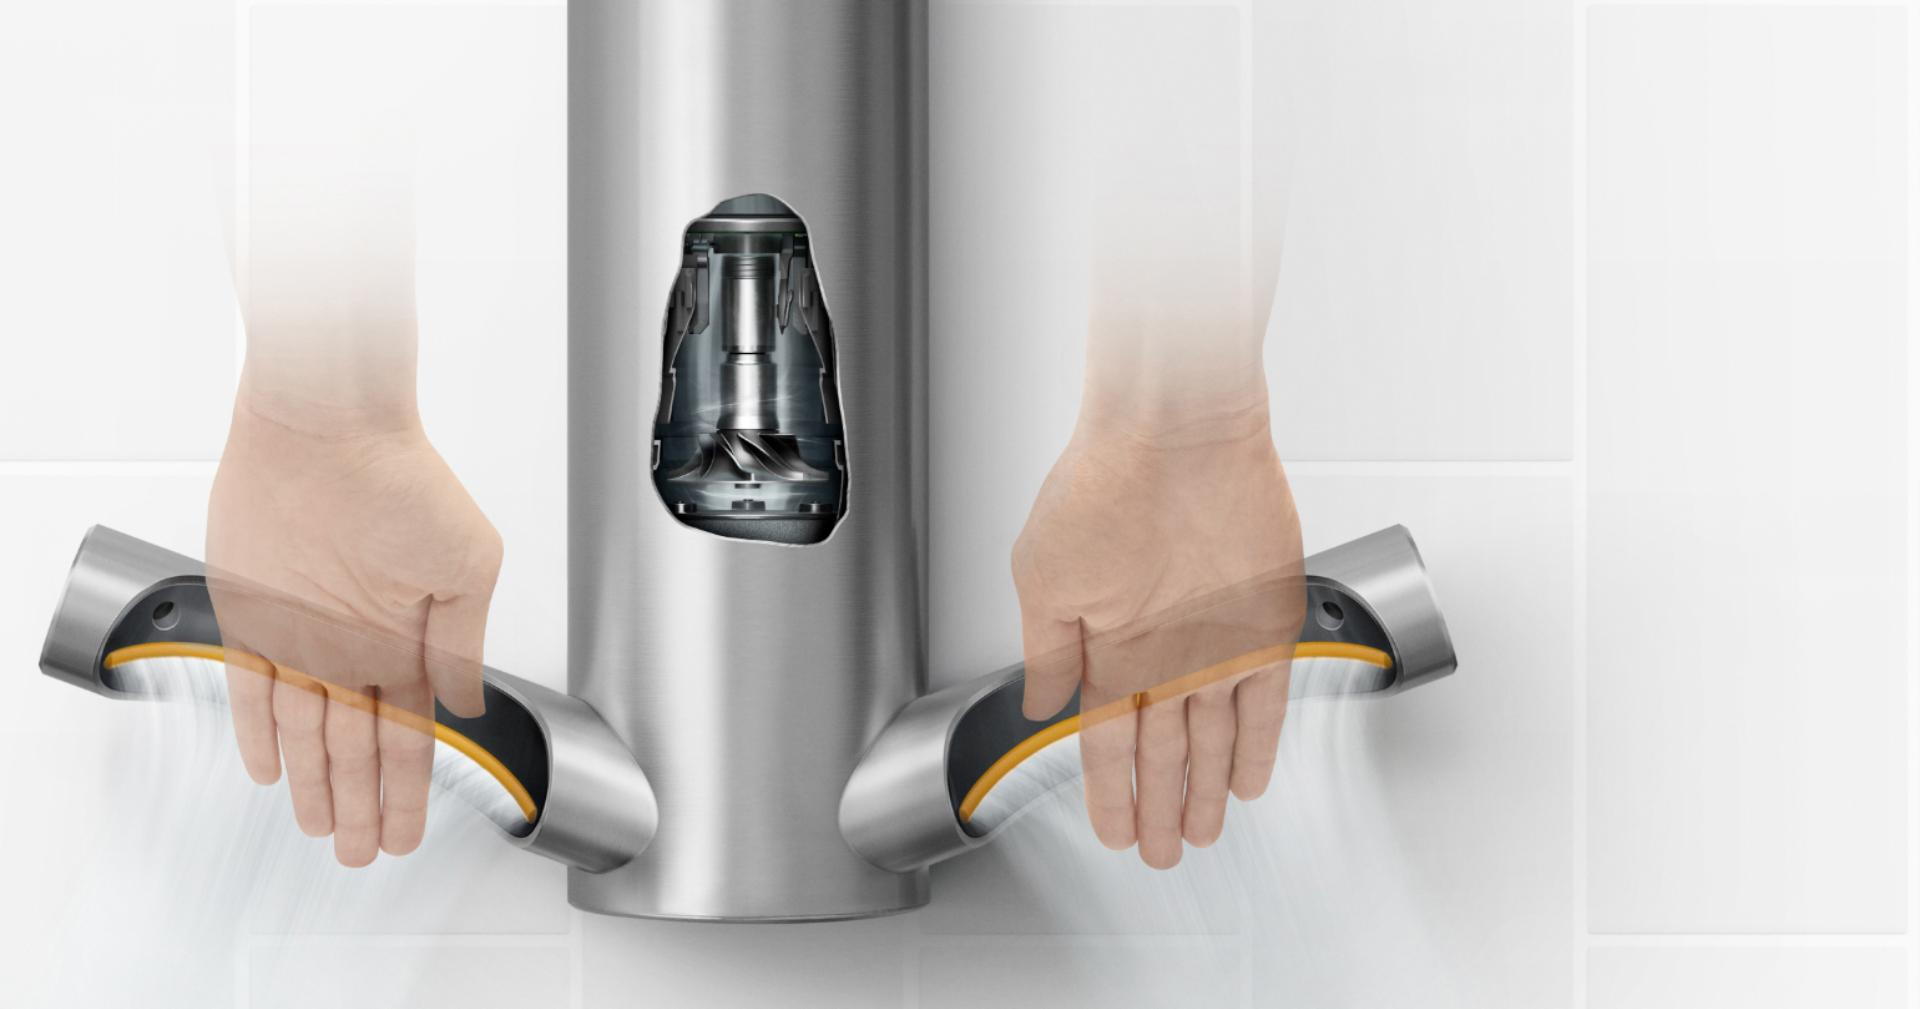 Model drying hands under the Dyson Airblade 9kJ hand dryer.